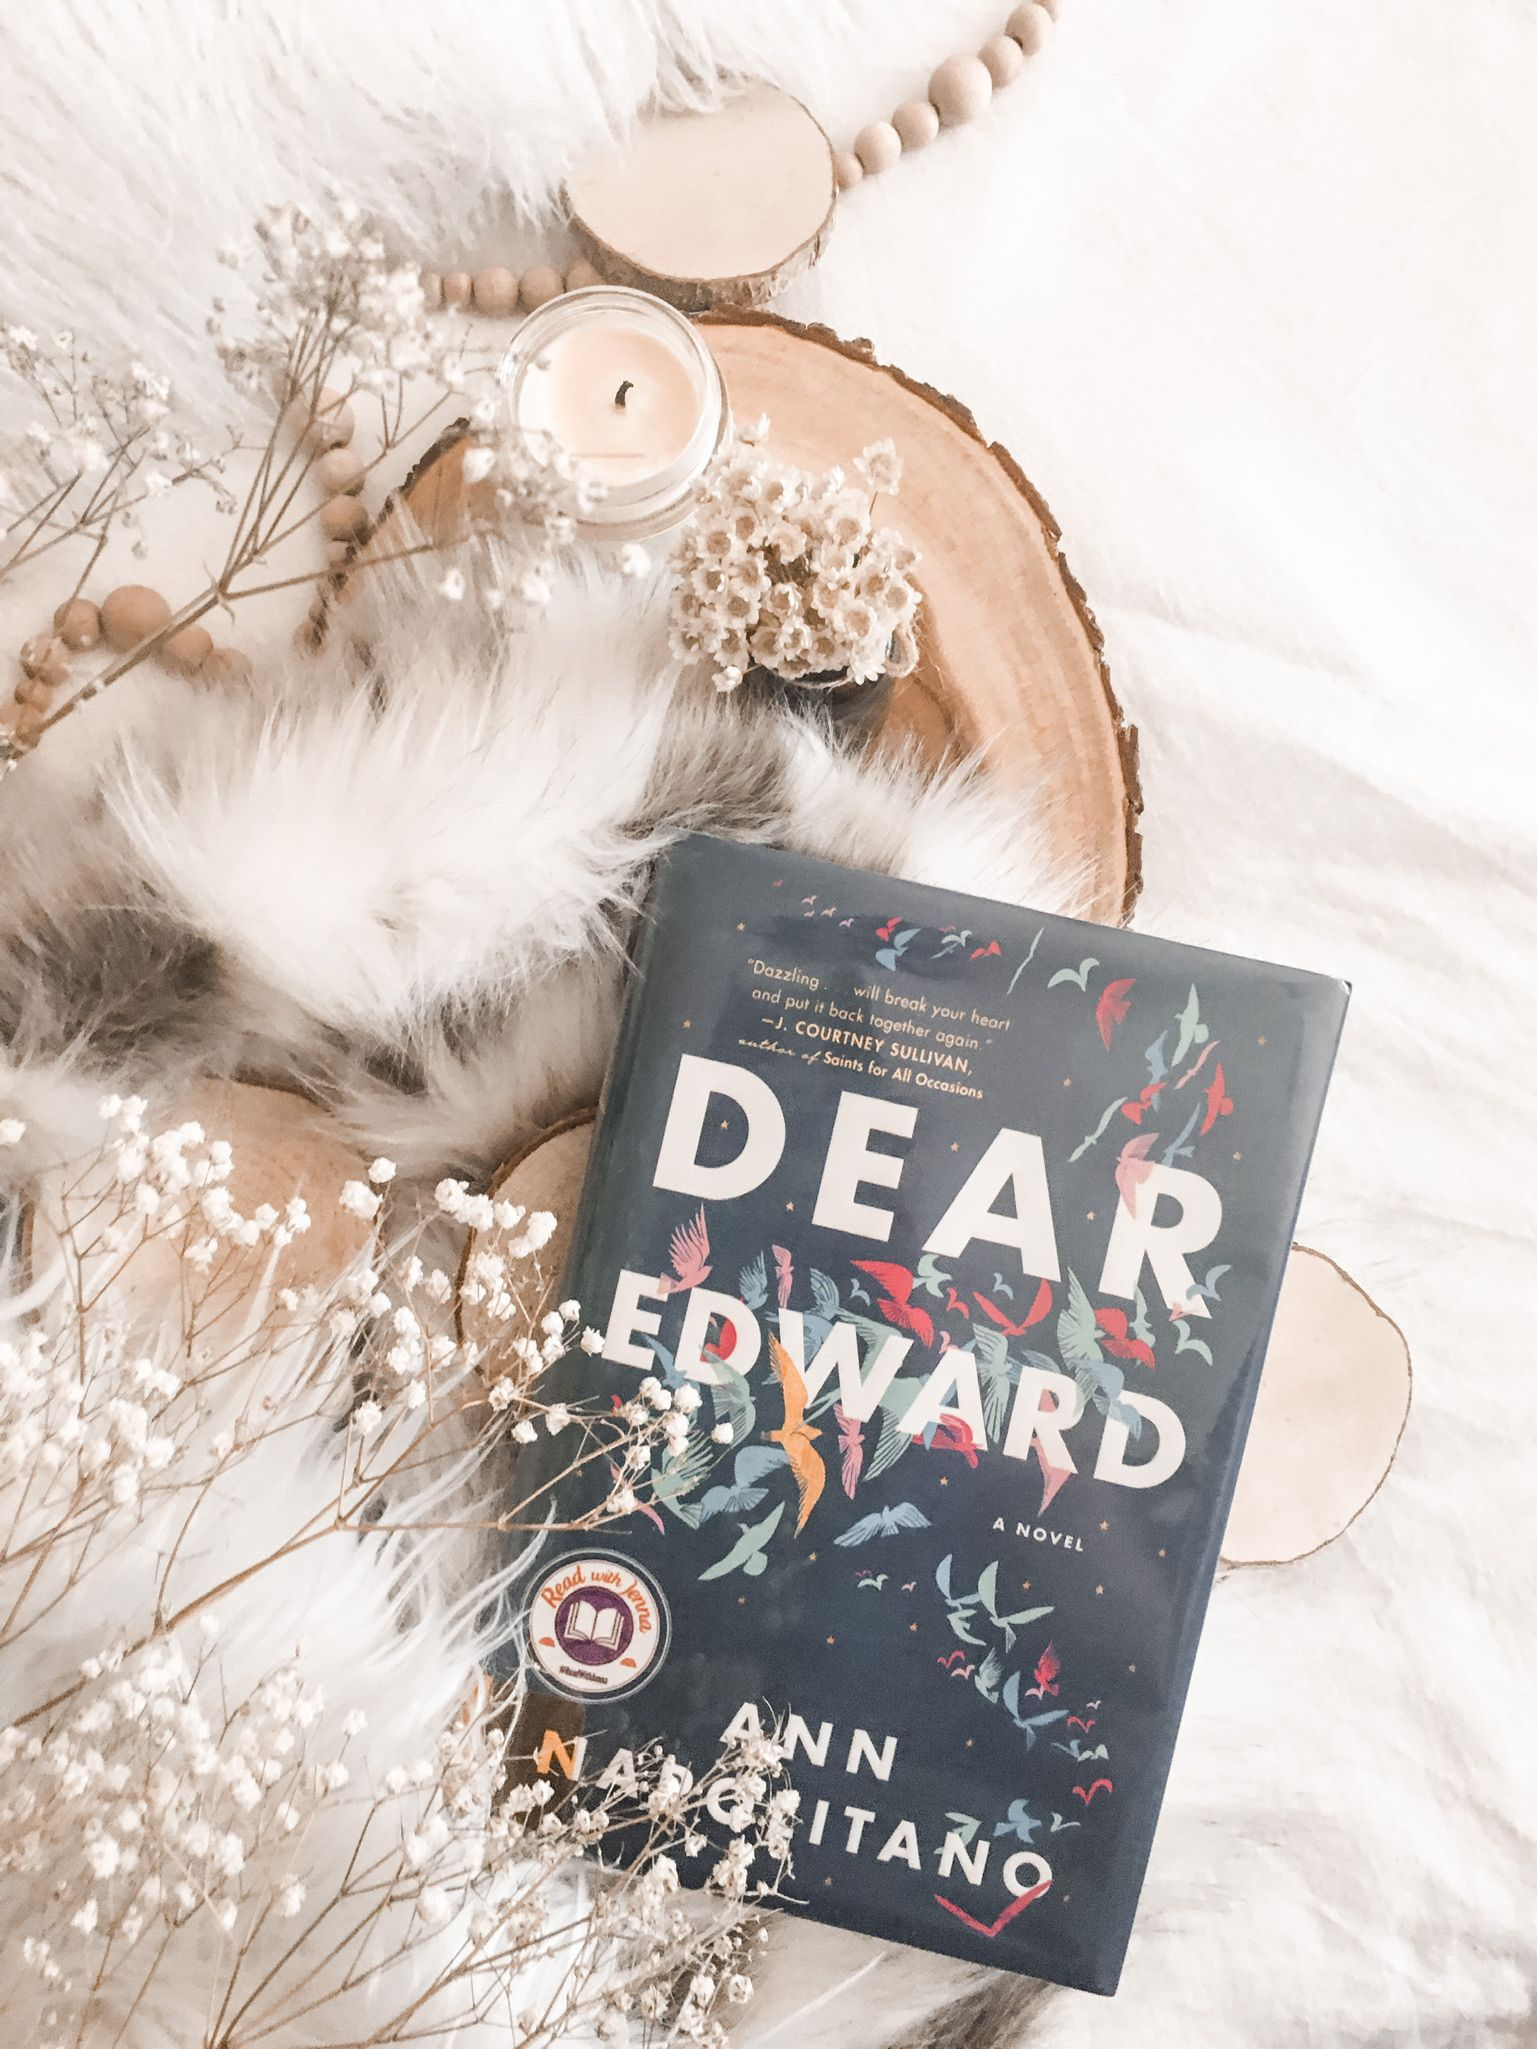 Ever since its release, Dear Edward by Ann Napolitano has been all over Bookstagram. And I can see the beauty of it, how well it was written, and the overall brilliance of its composition. BUT I also had the hardest time with this book, and that's mainly because of the topic.  #audiobookreview #bookstagram #bookreview #bookblog #bookish #DearEdward #AnnNapolitano